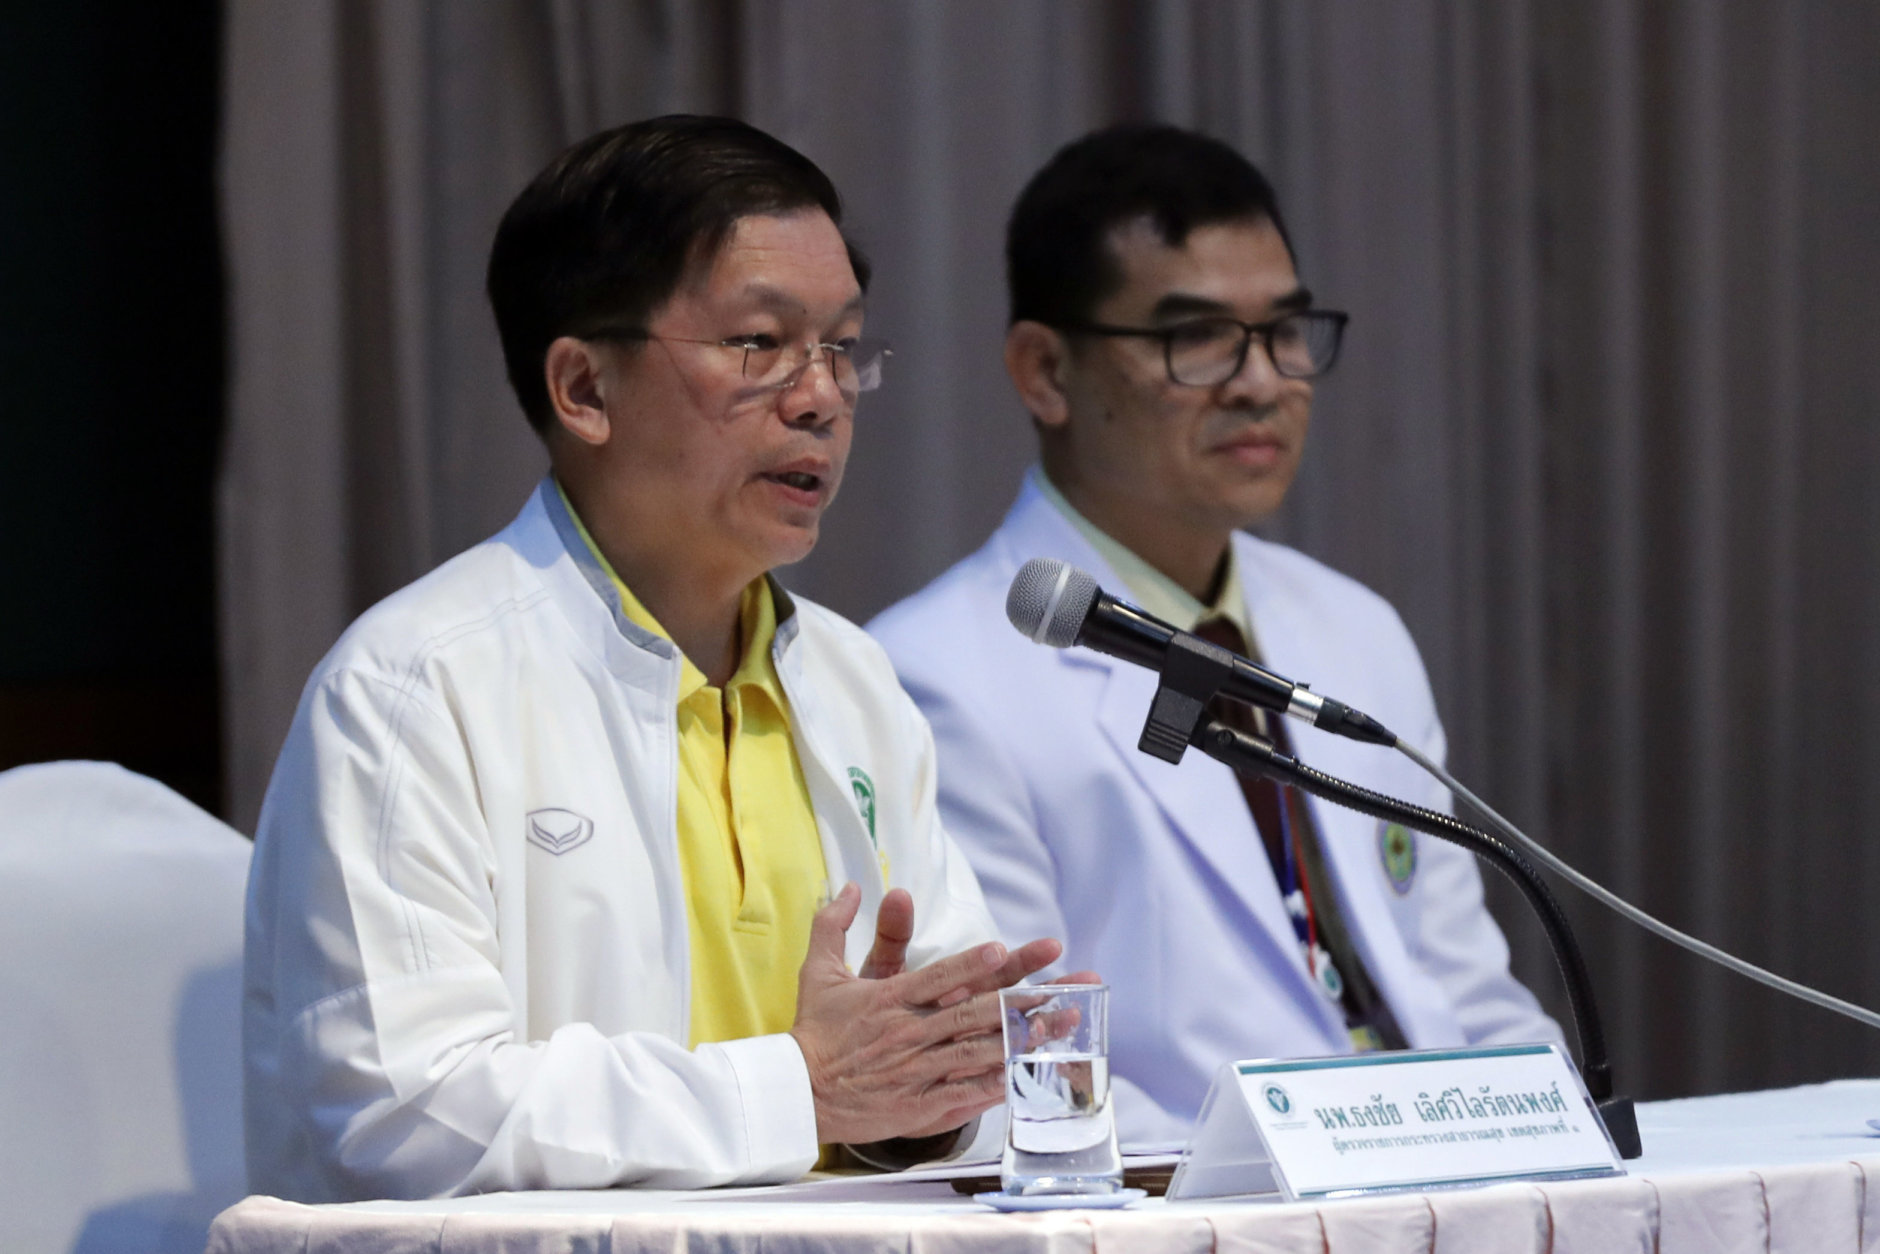 Thongchai Lertwilairatanapong, a public health inspector, left, speaks during a press conference at a hospital in Chiang Rai province, northern Thailand, Wednesday, July 11, 2018. Thongchai said the soccer teammates rescued from a flooded cave lost weight during their two-week ordeal but had water while they were trapped and are in good health. (AP Photo/Vincent Thian)